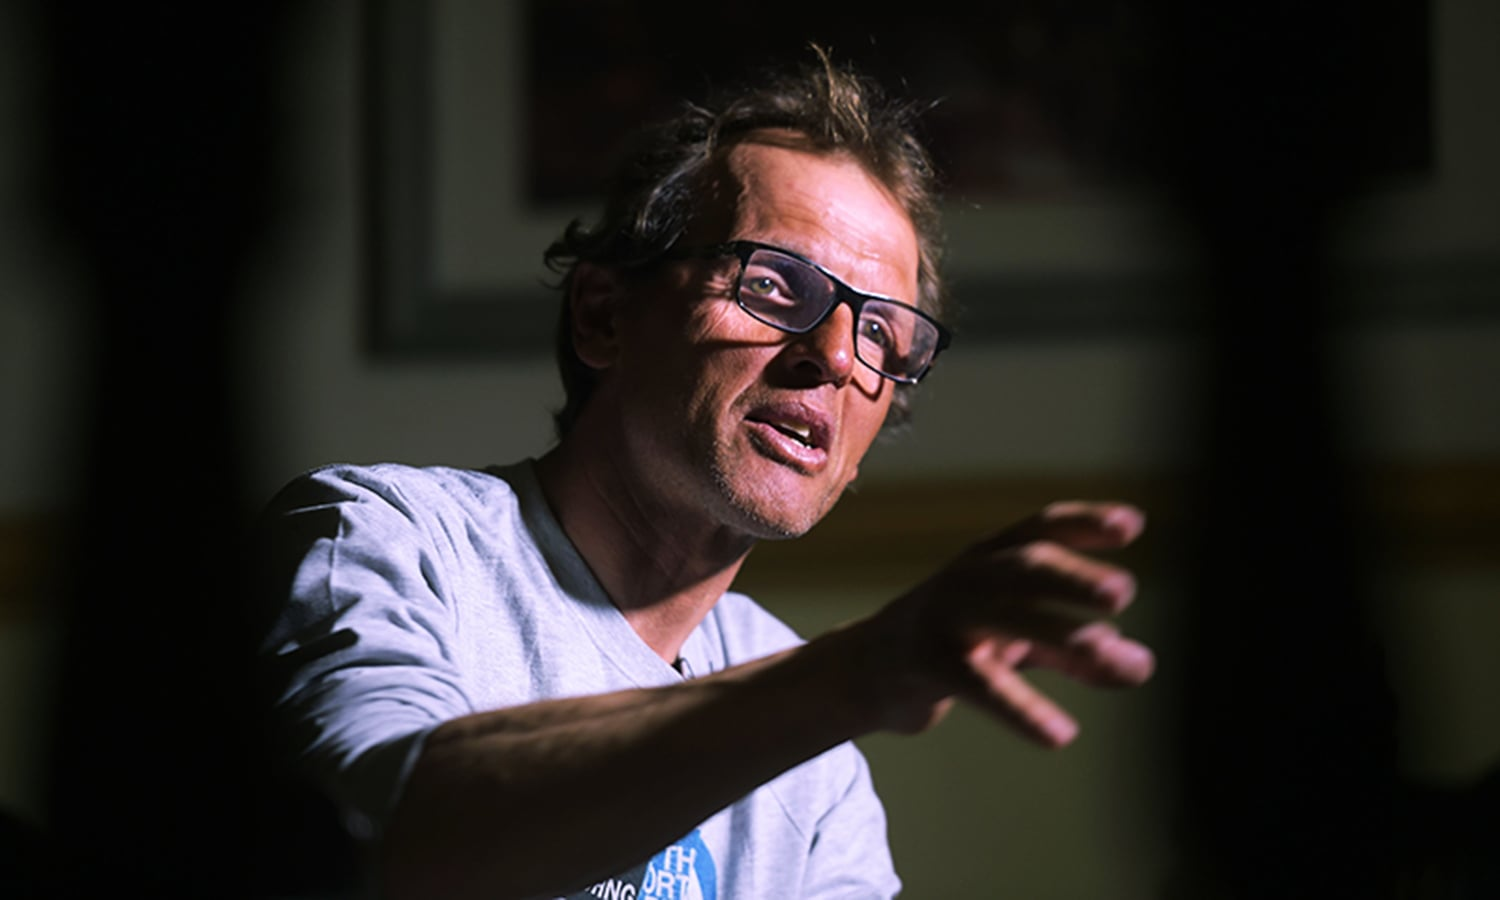 In this photograph taken on March 2, 2016, Italian climber Simone Moro, one of the world's leading alpinists, speaks with AFP during an interview in Islamabad.—AFP